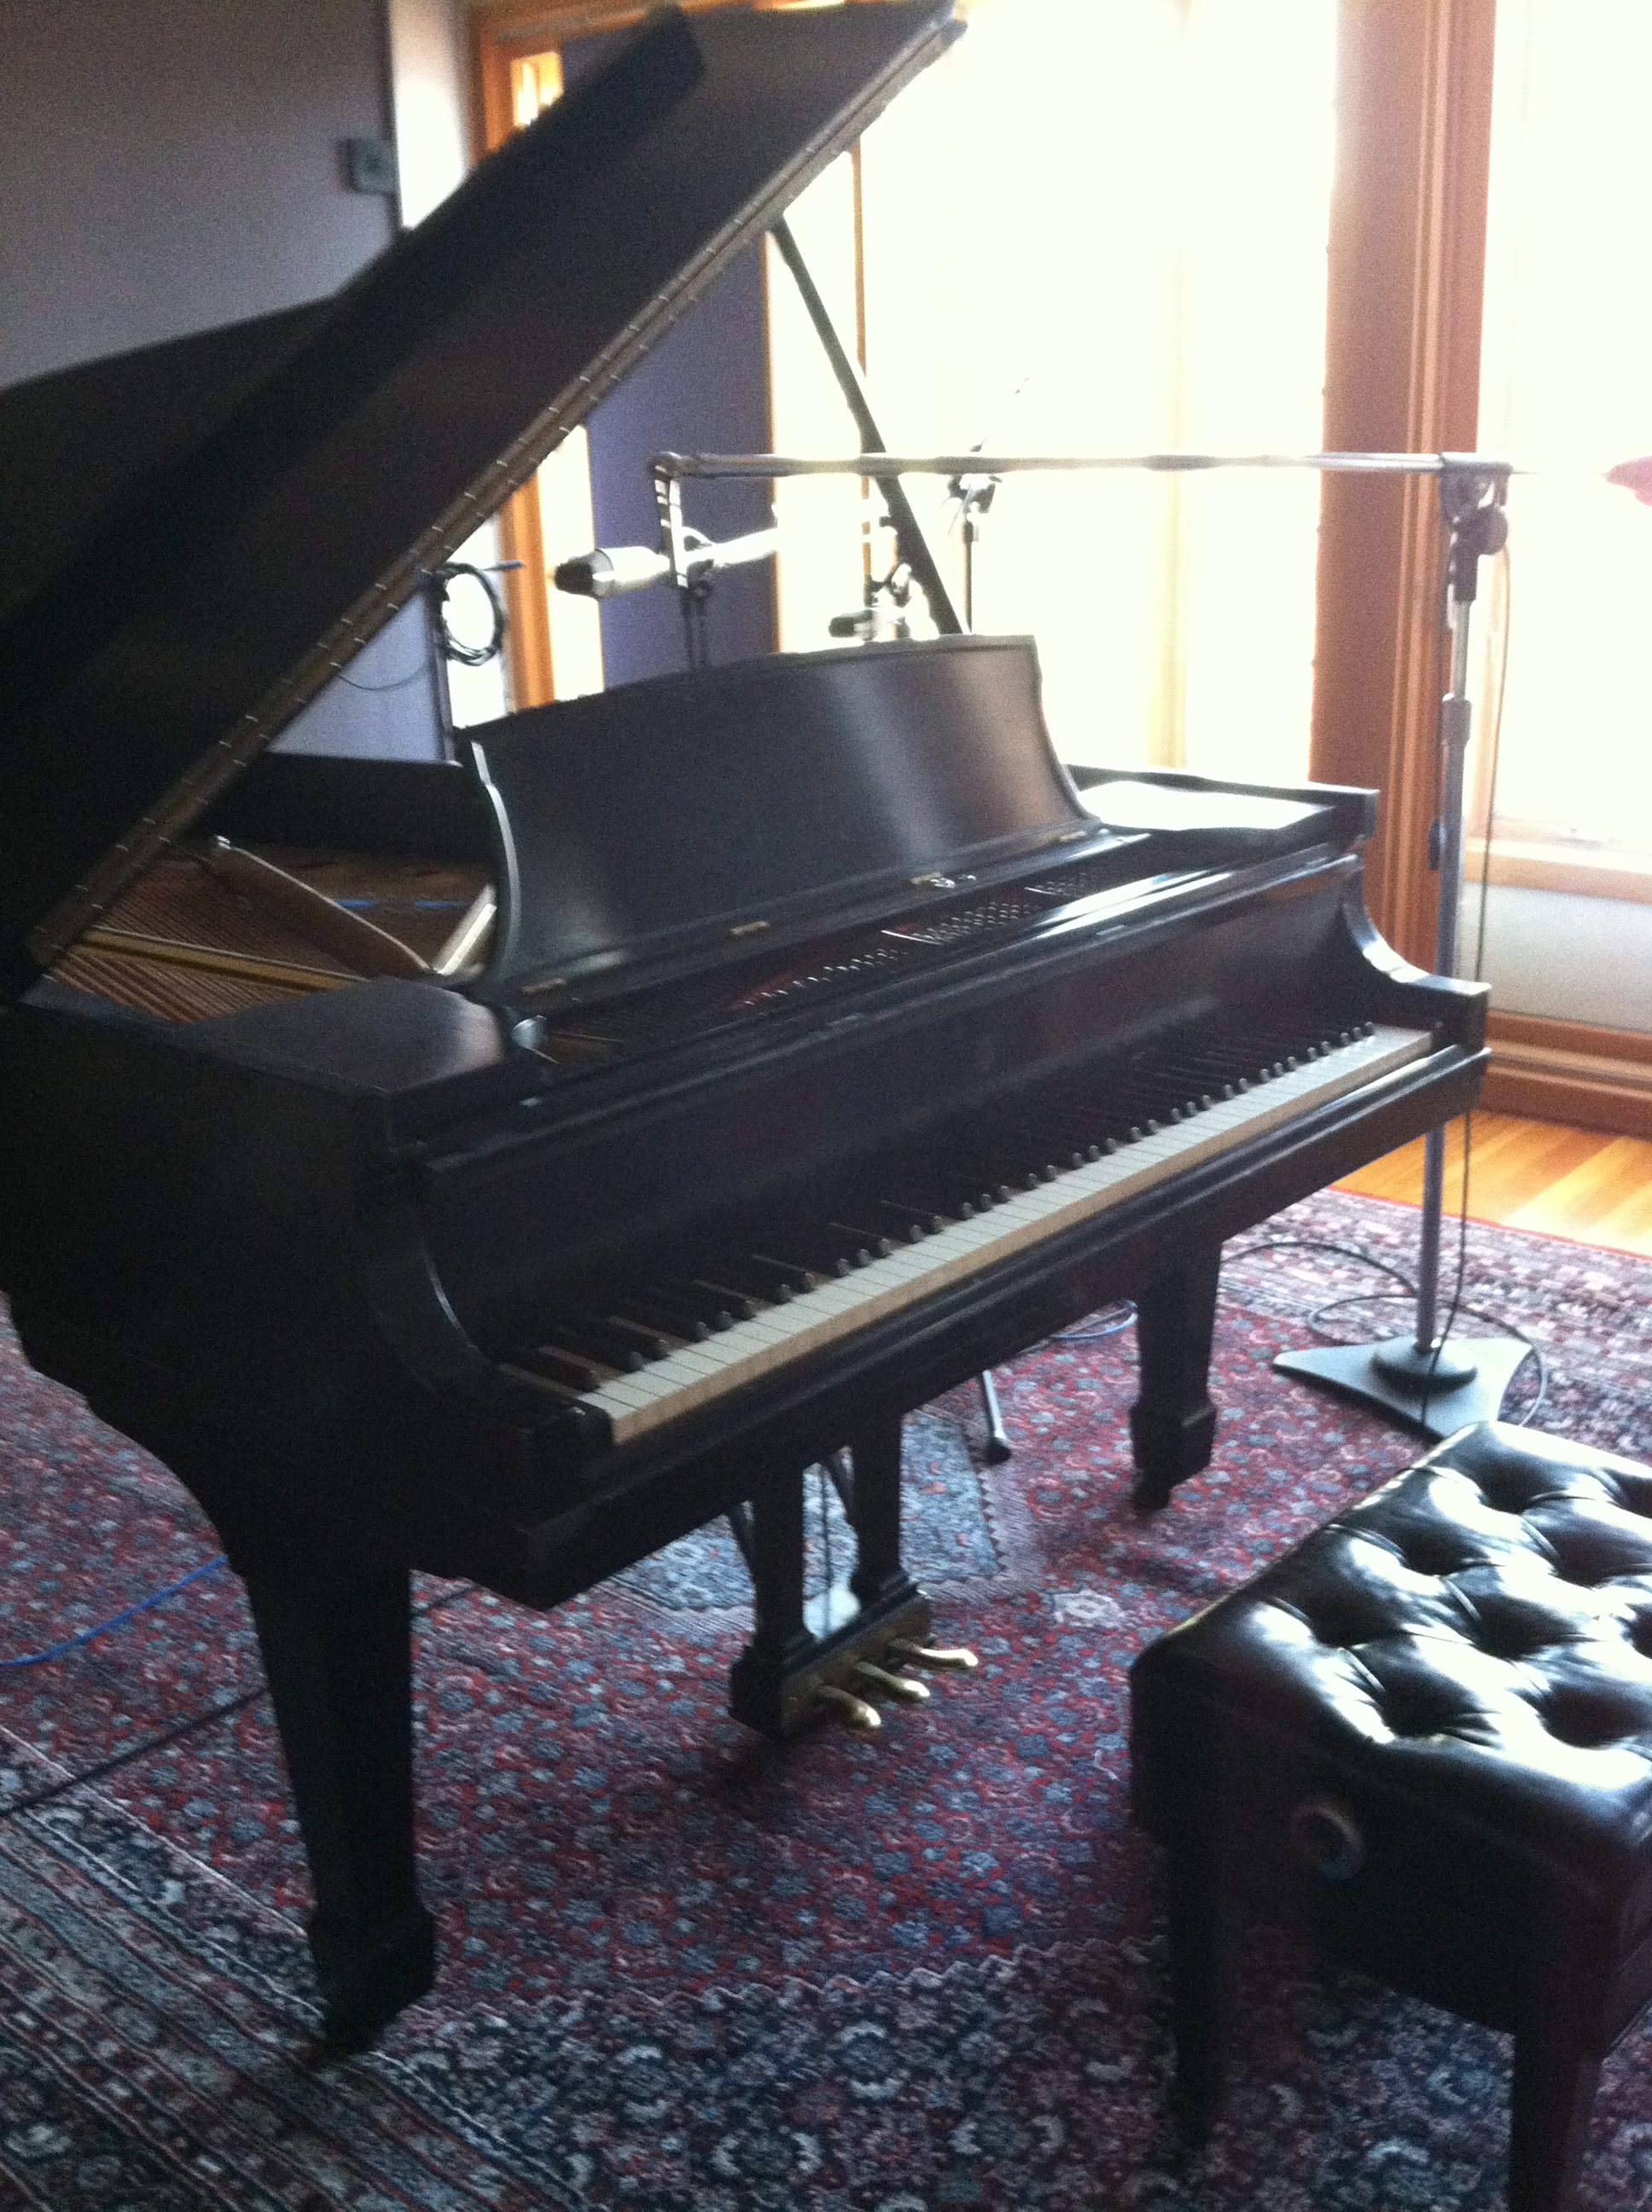 The piano at Imaginary Road Studios